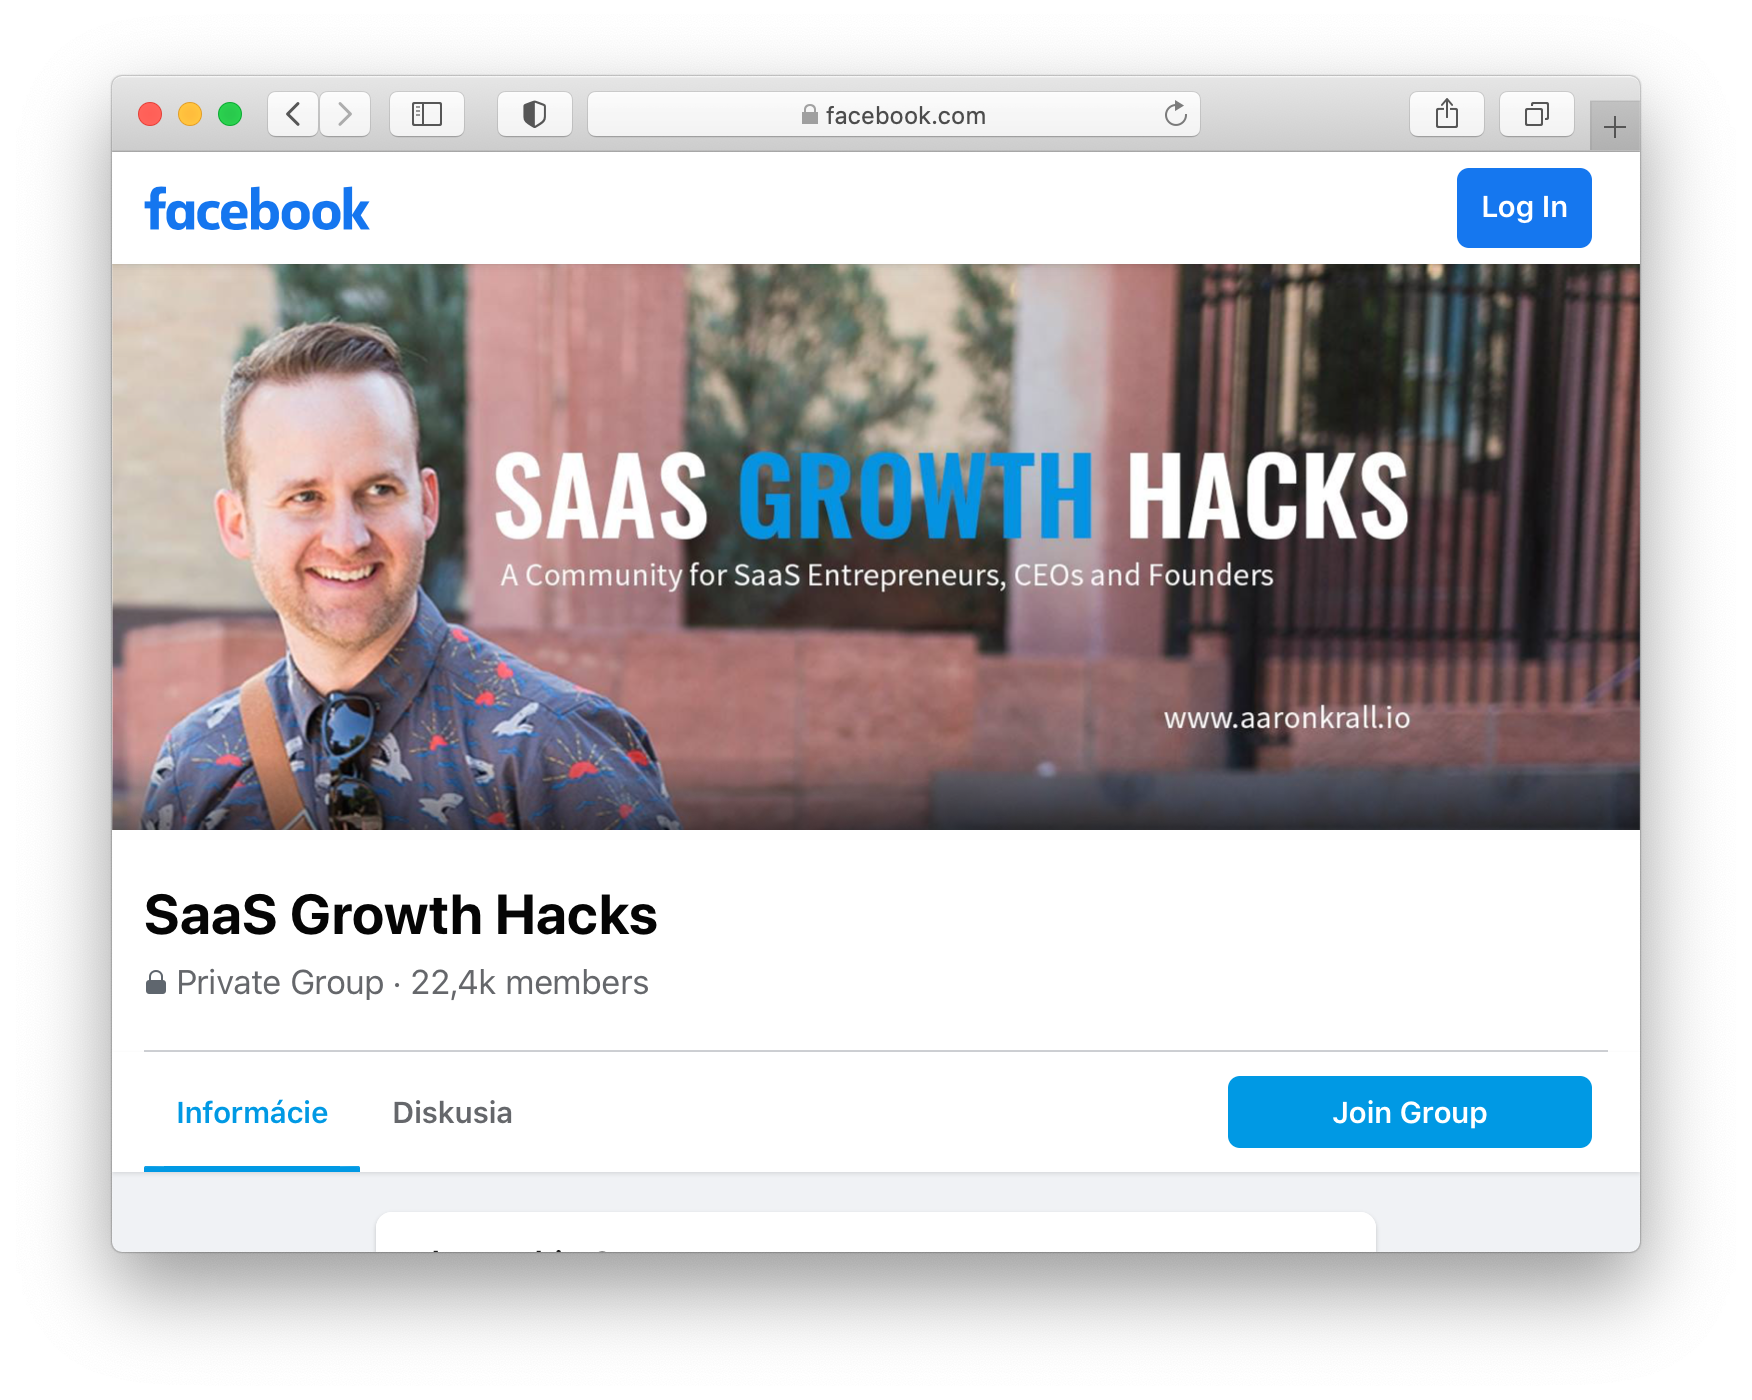 saas-growth-hacks-facebook-group